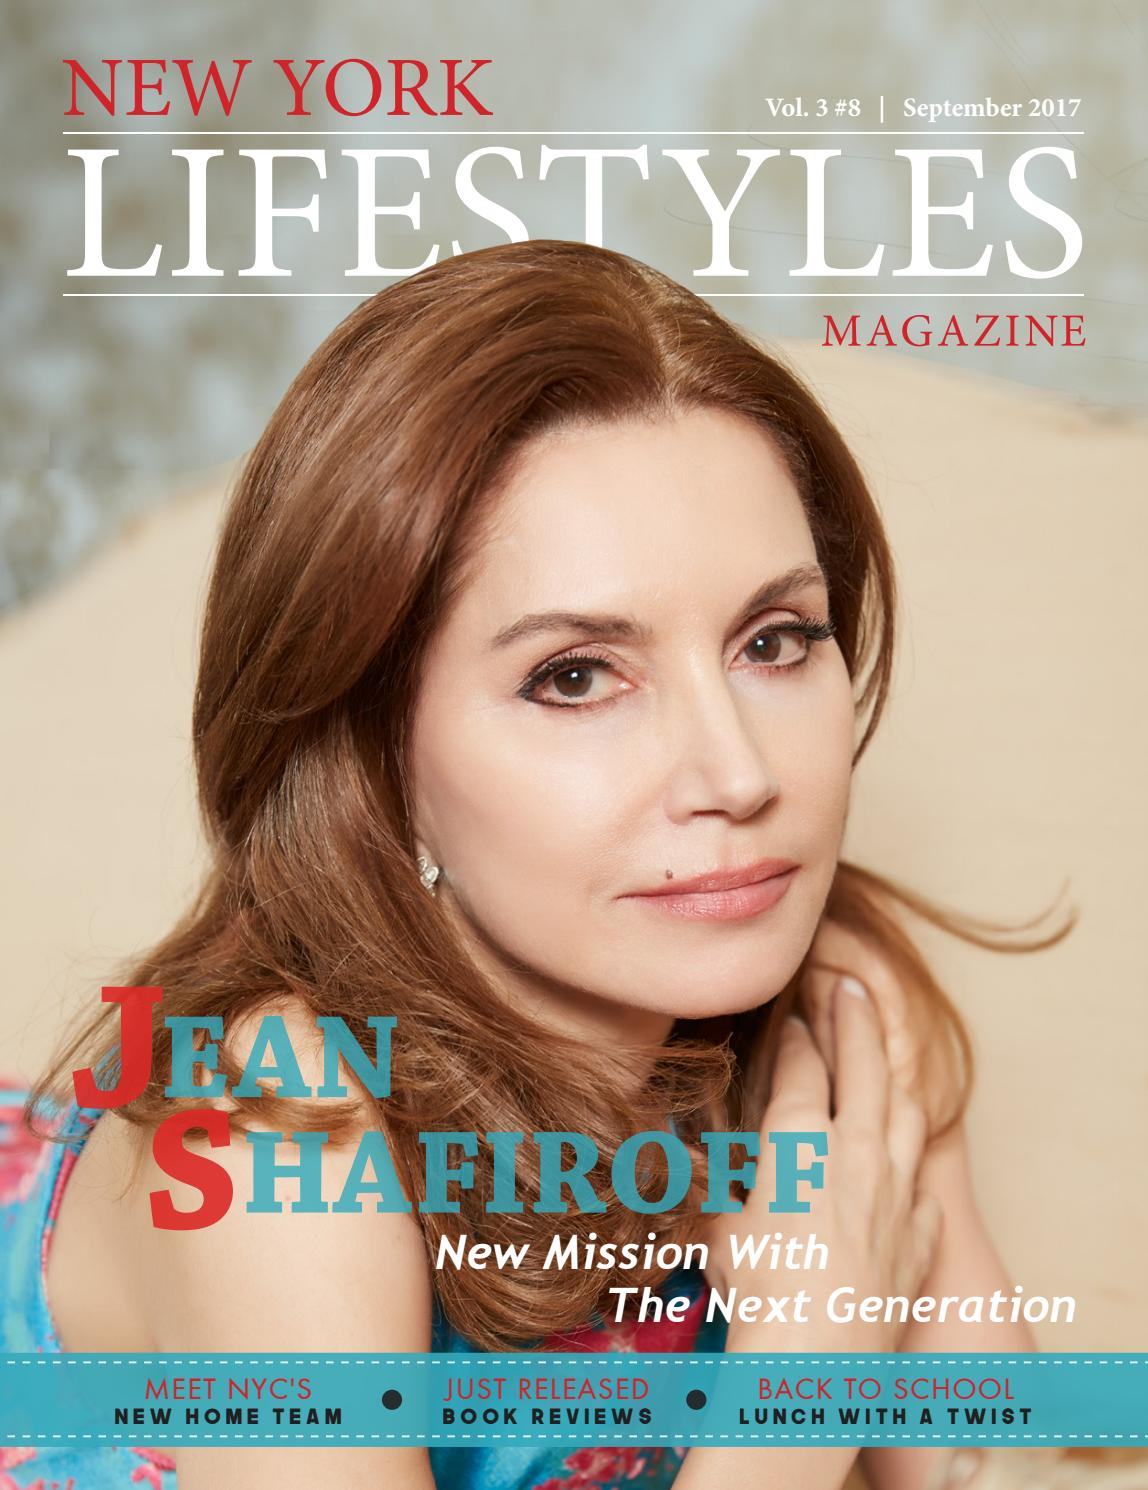 Screening of the uncountable laughter of the sea at soho house dean - New York Lifestyles Magazine September 2017 By New York Lifestyles Magazine Issuu